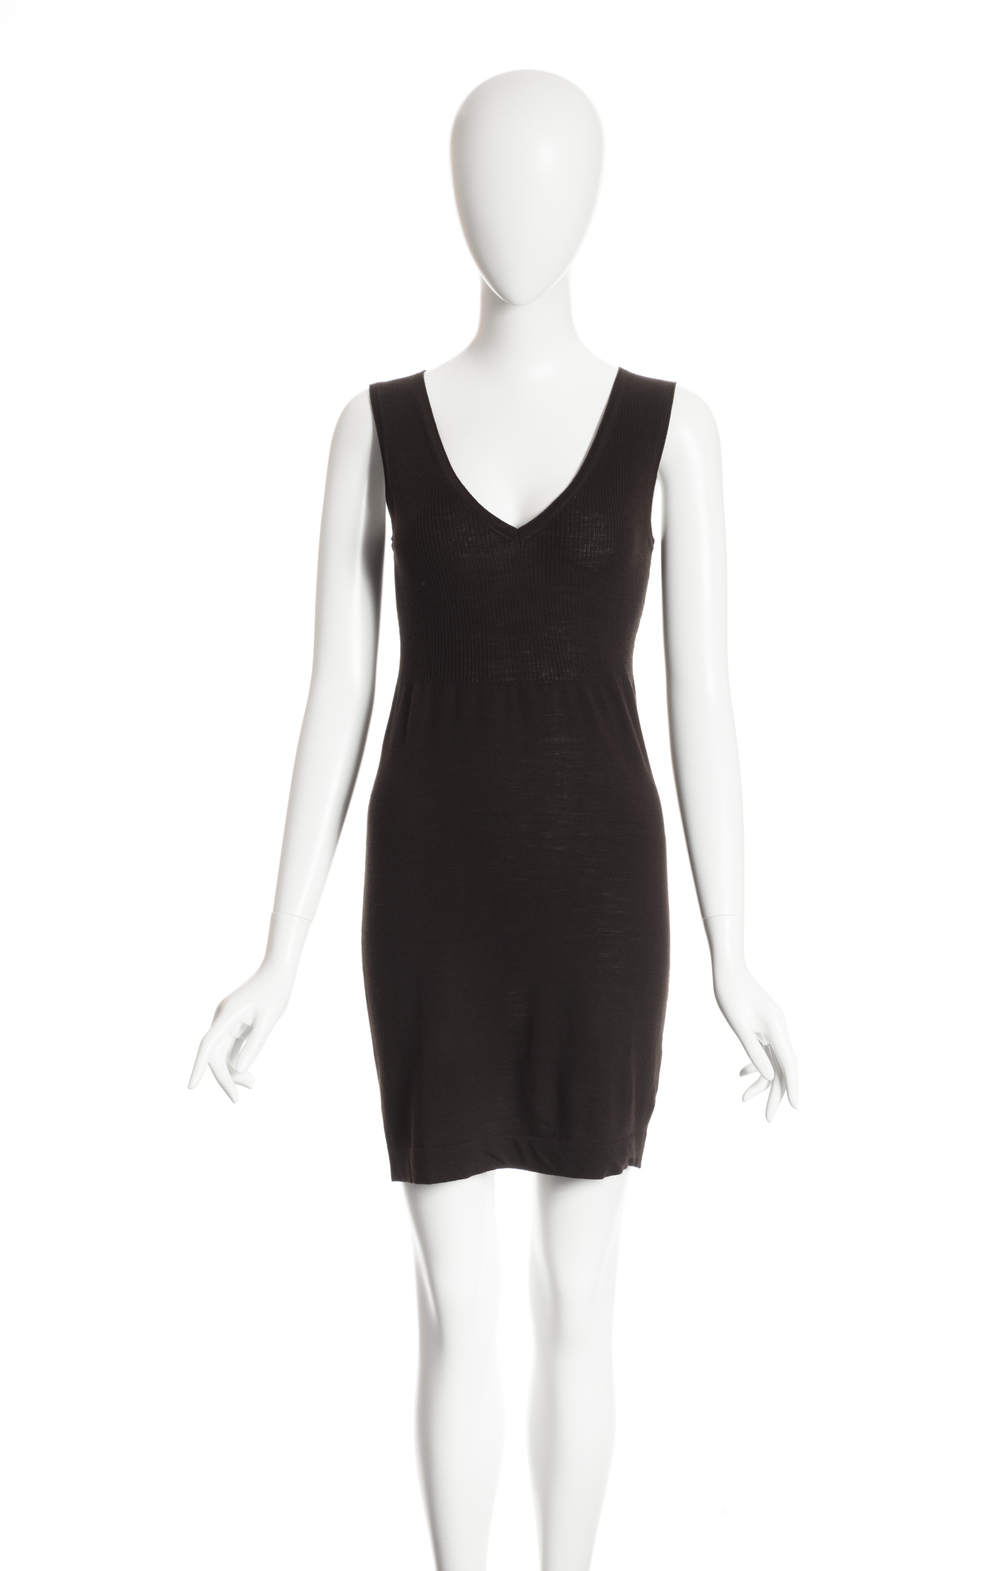 EUGENIE - Robe Charleston en tricot - 230$